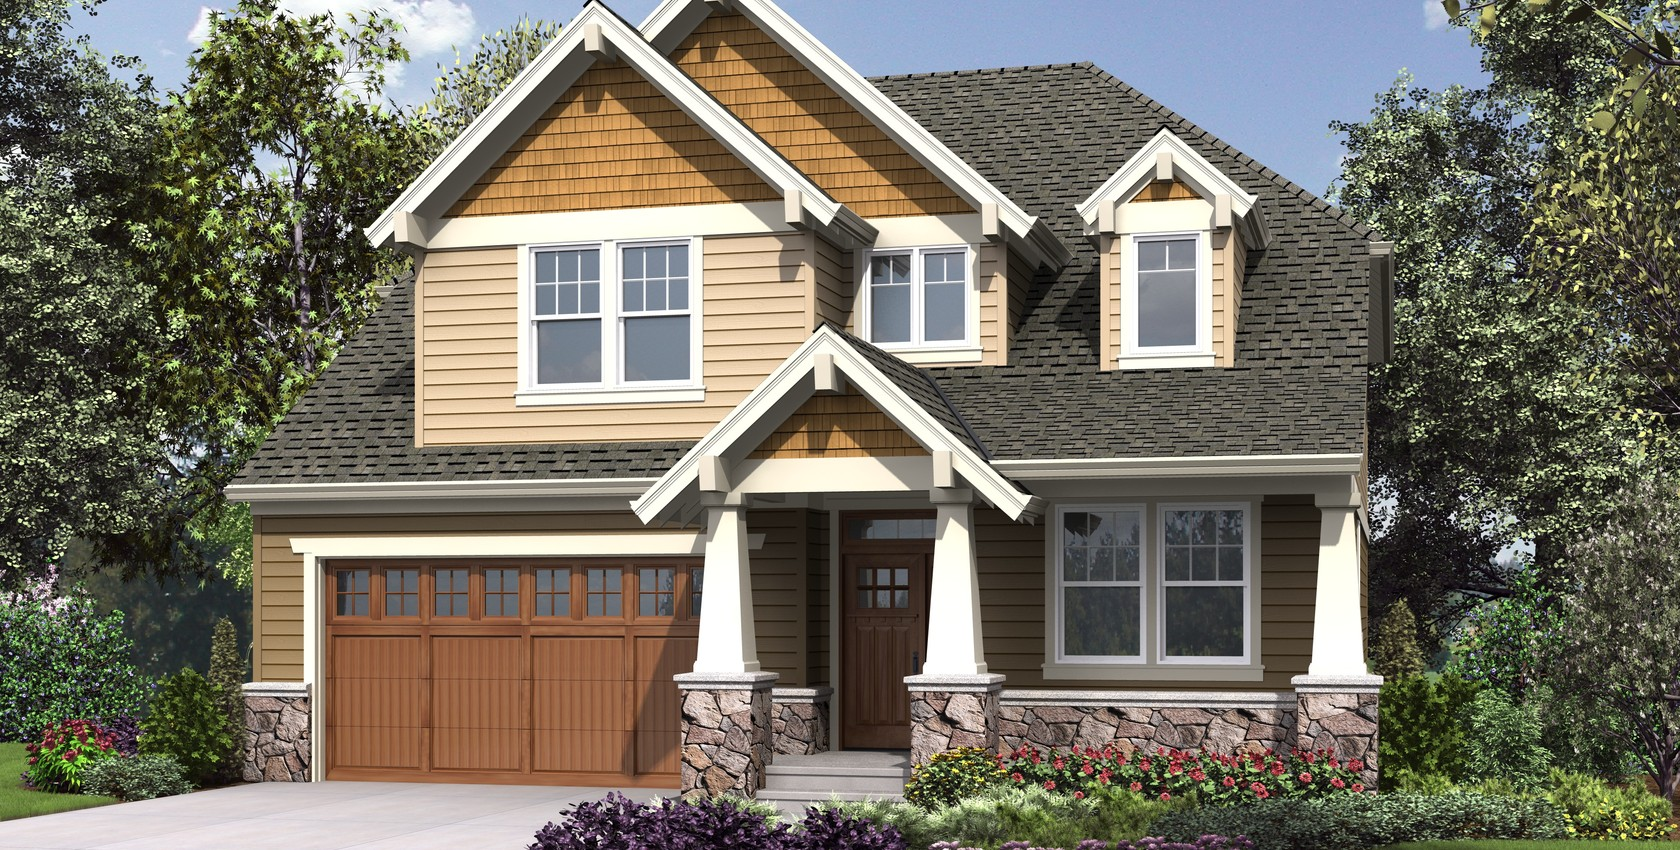 Image for Summerfell-Plan 2230CE with walkout basement-8651